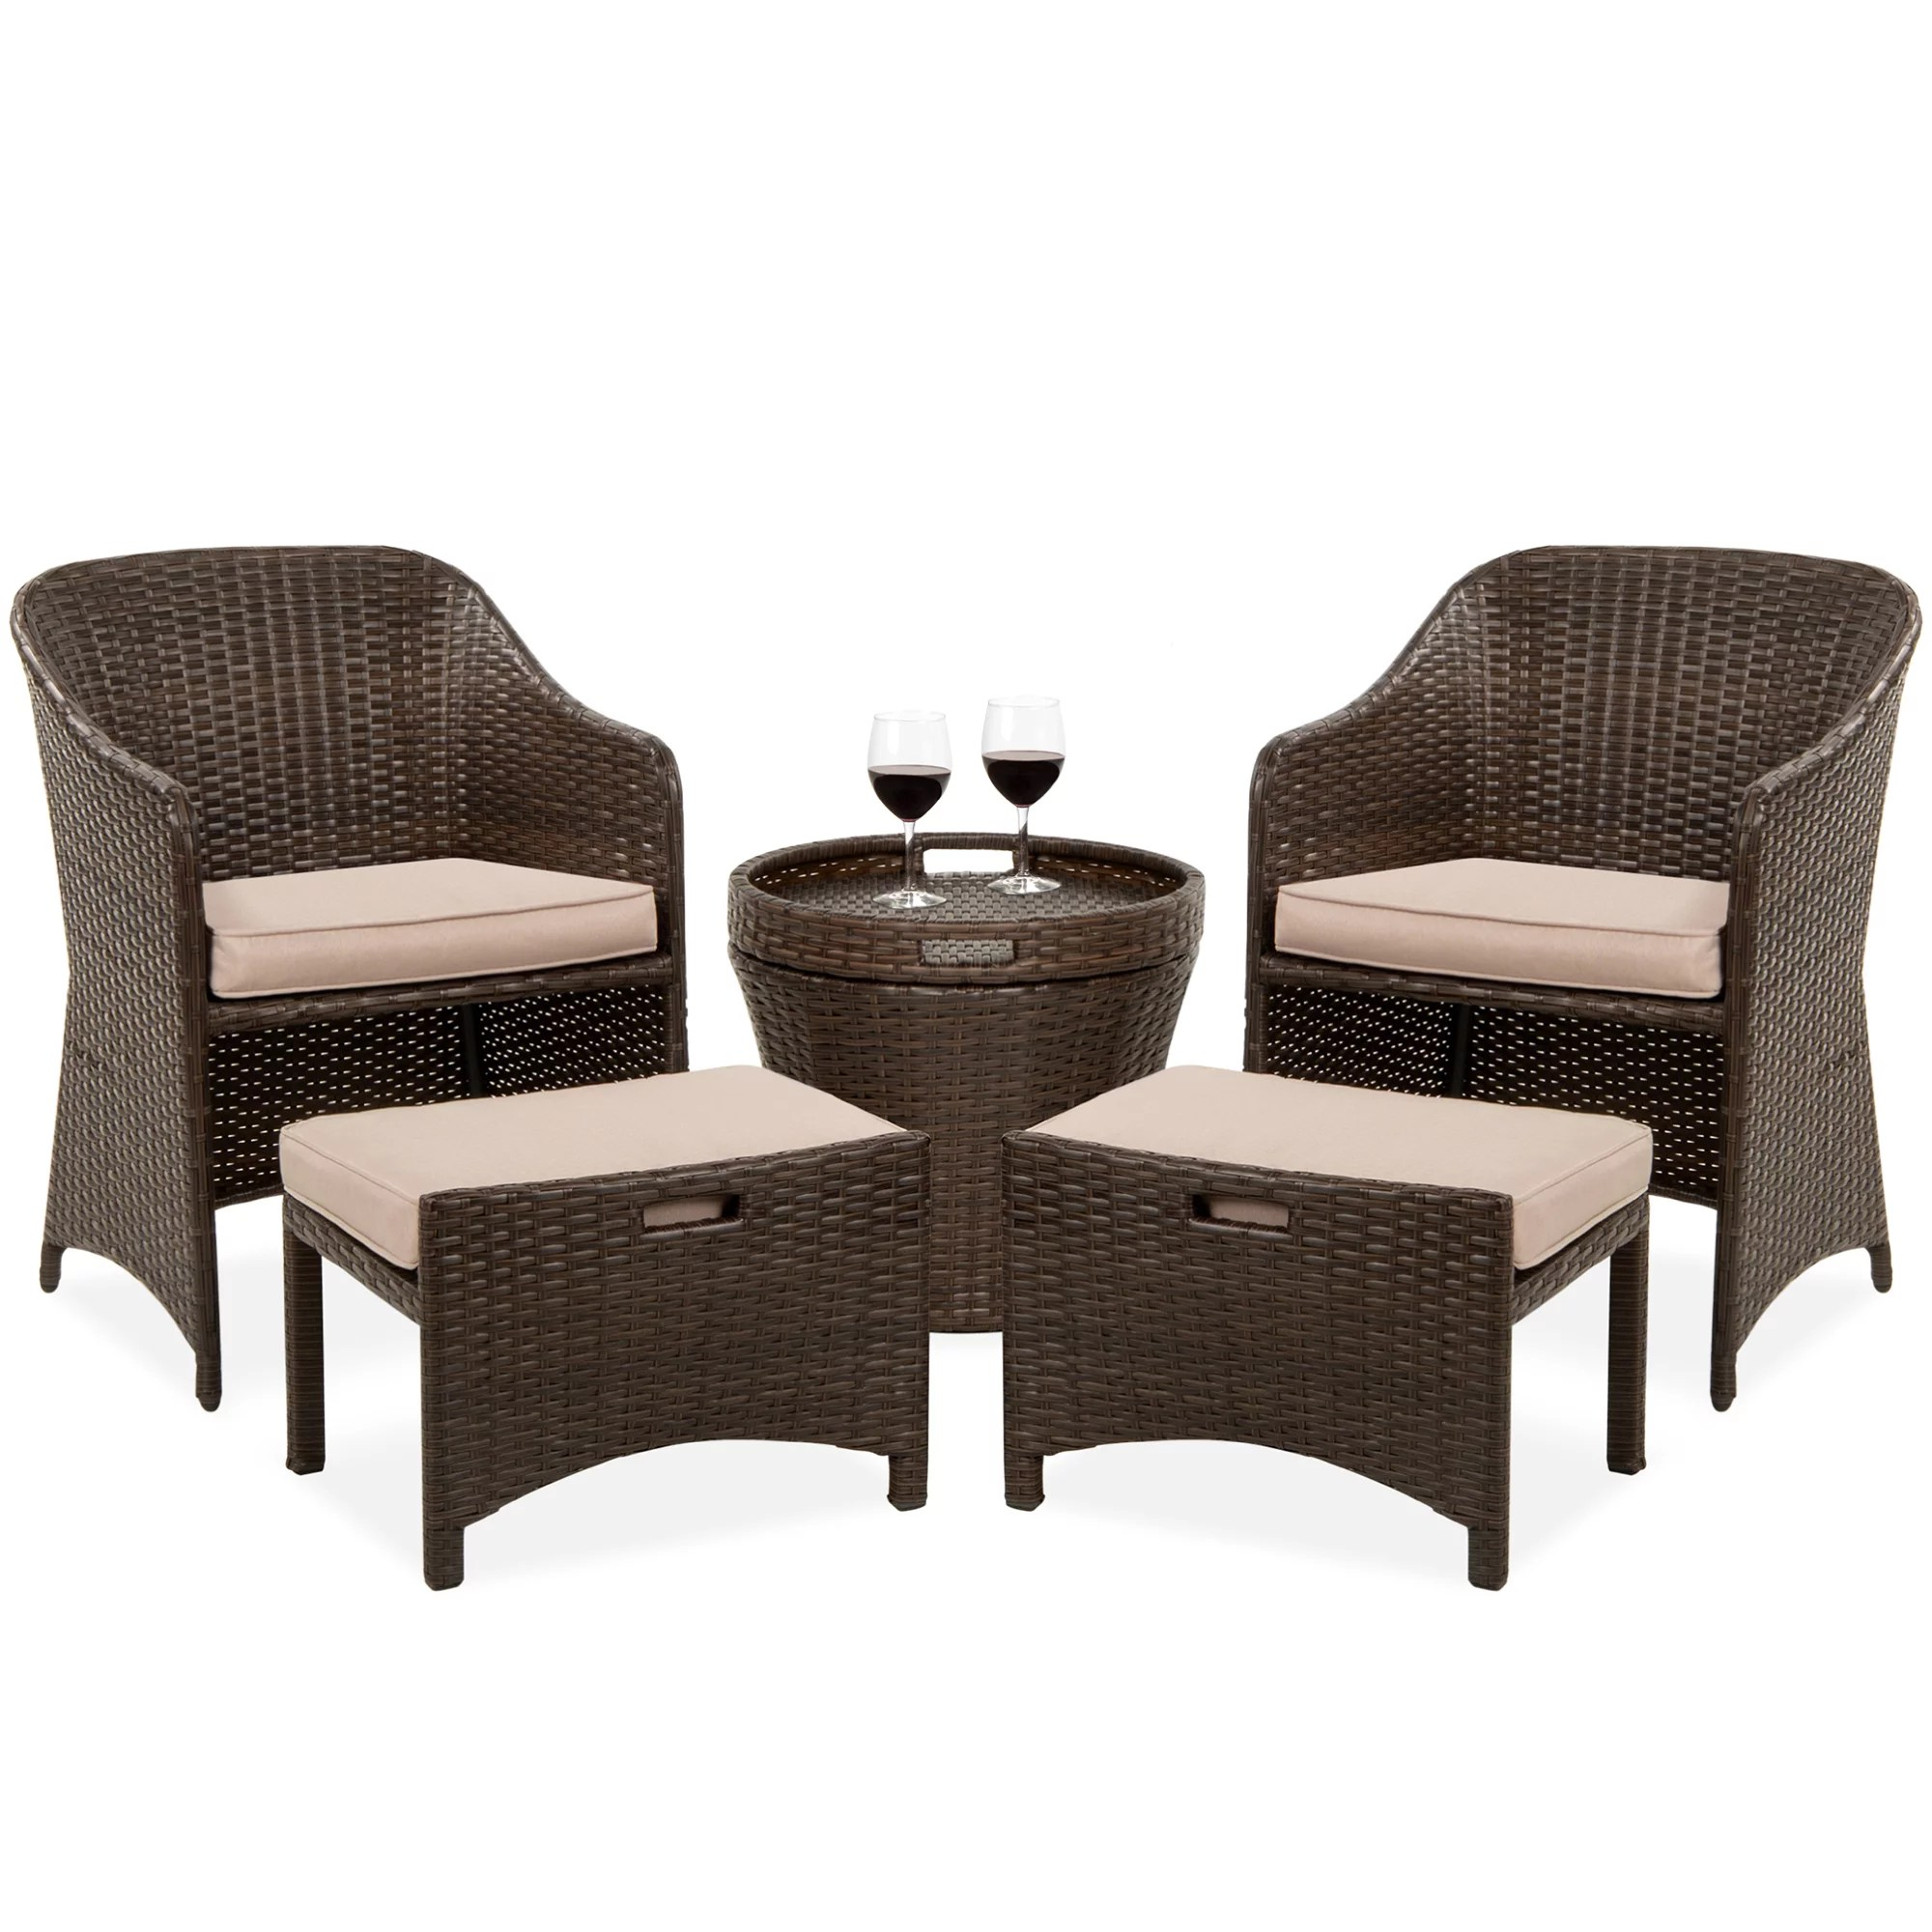 best choice products 5 piece outdoor wicker patio bistro space saving furniture set w storage table no assembly brown walmart com